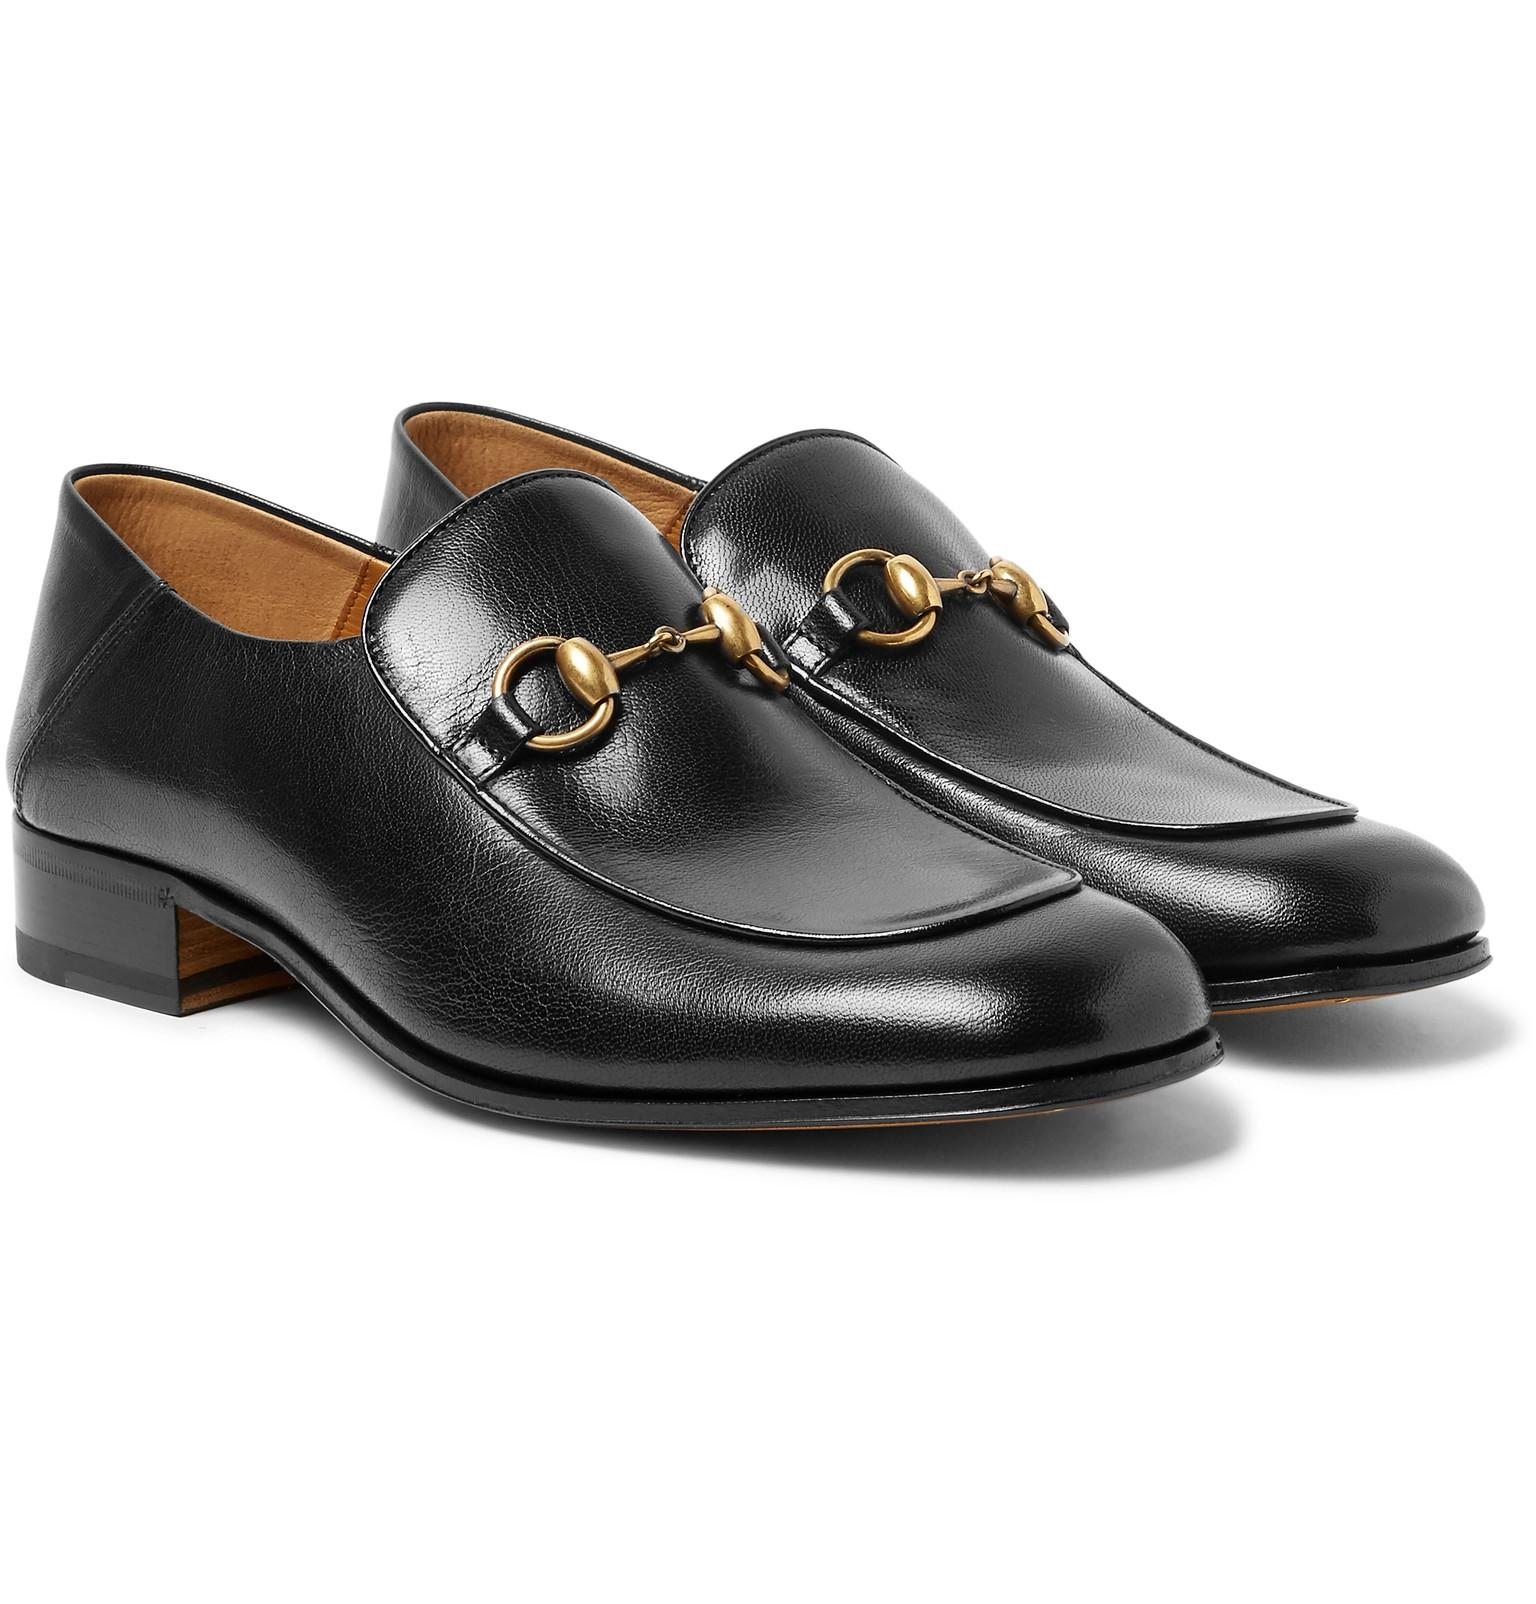 78531aa993b Gucci Mister Horsebit Collapsible-heel Leather Loafers in Black for ...